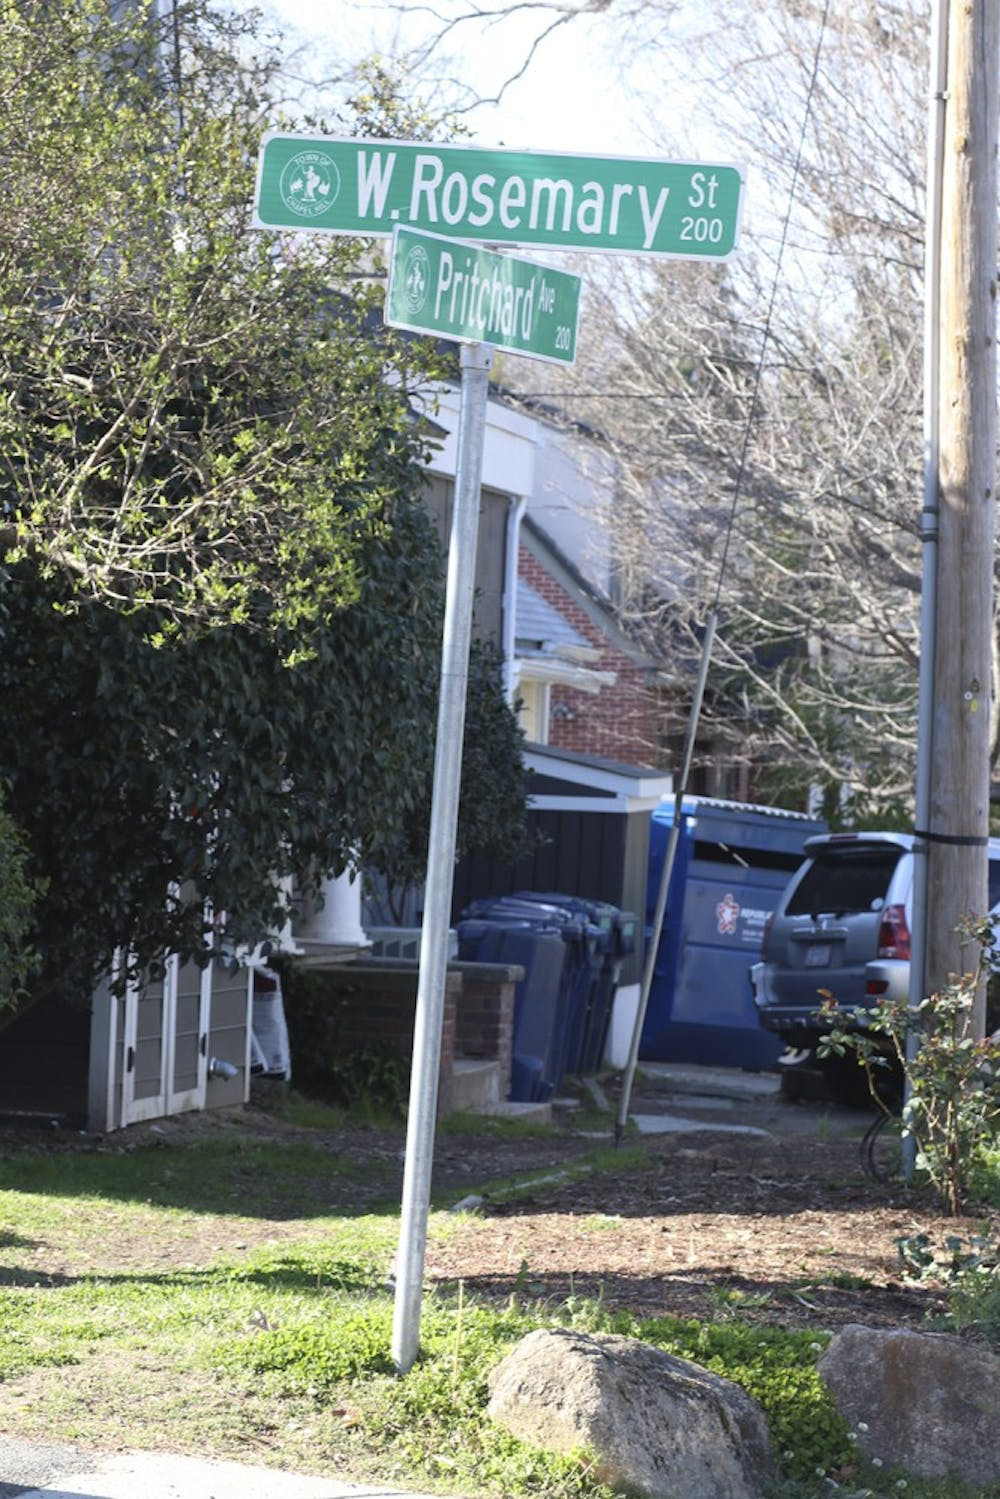 Development plan for West Rosemary Street will address residents' concerns